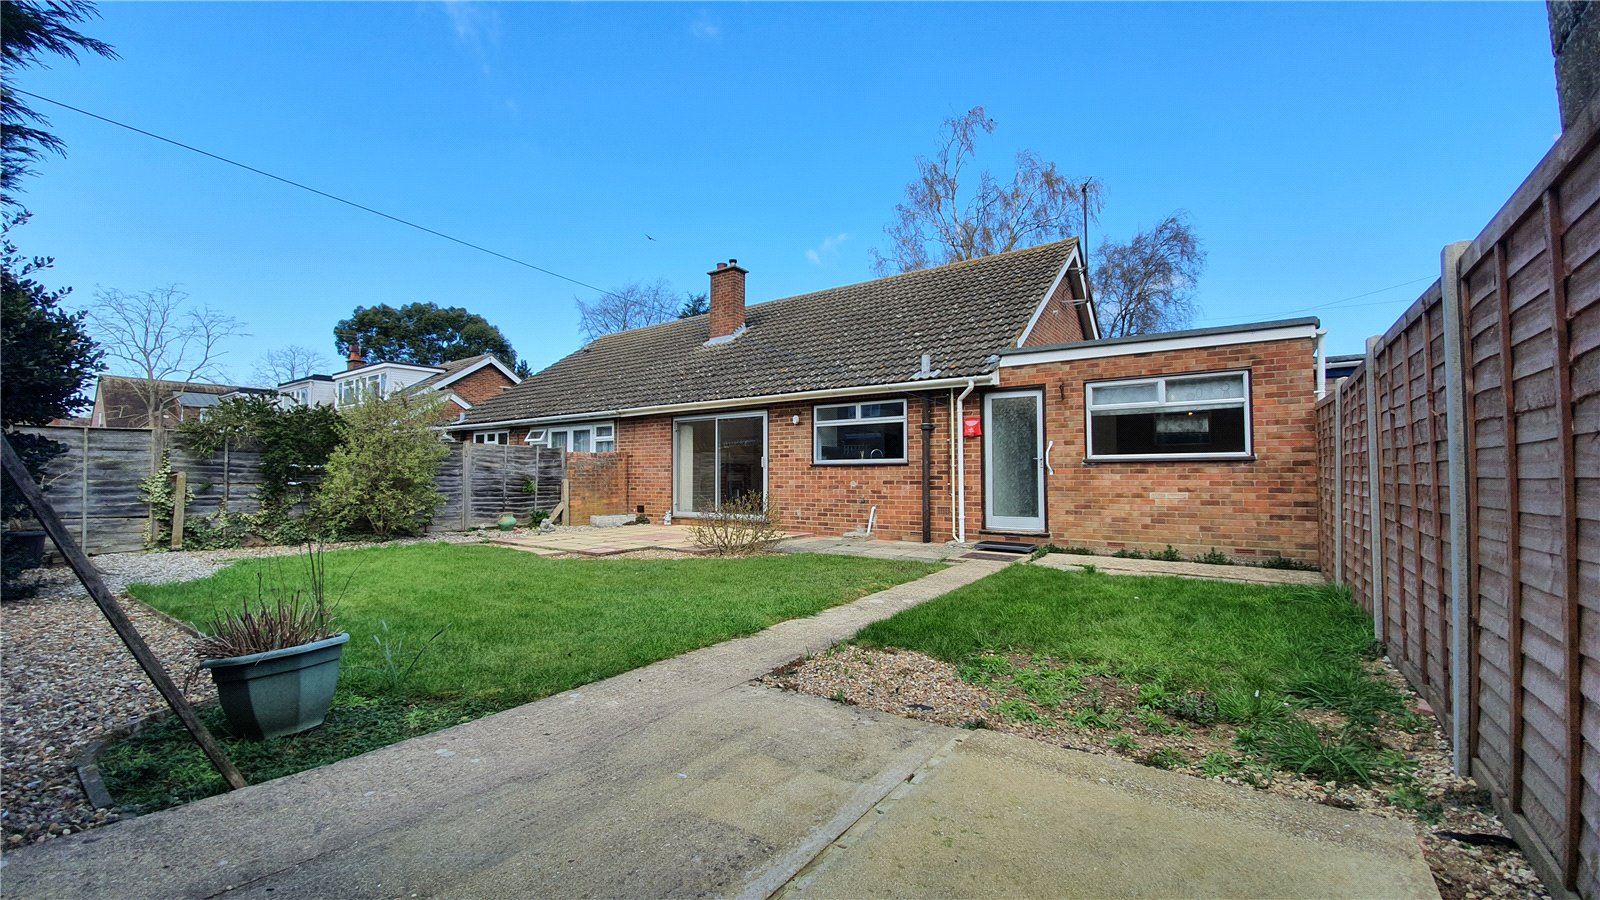 3 bed bungalow for sale in Clover Road, Eaton Socon 5